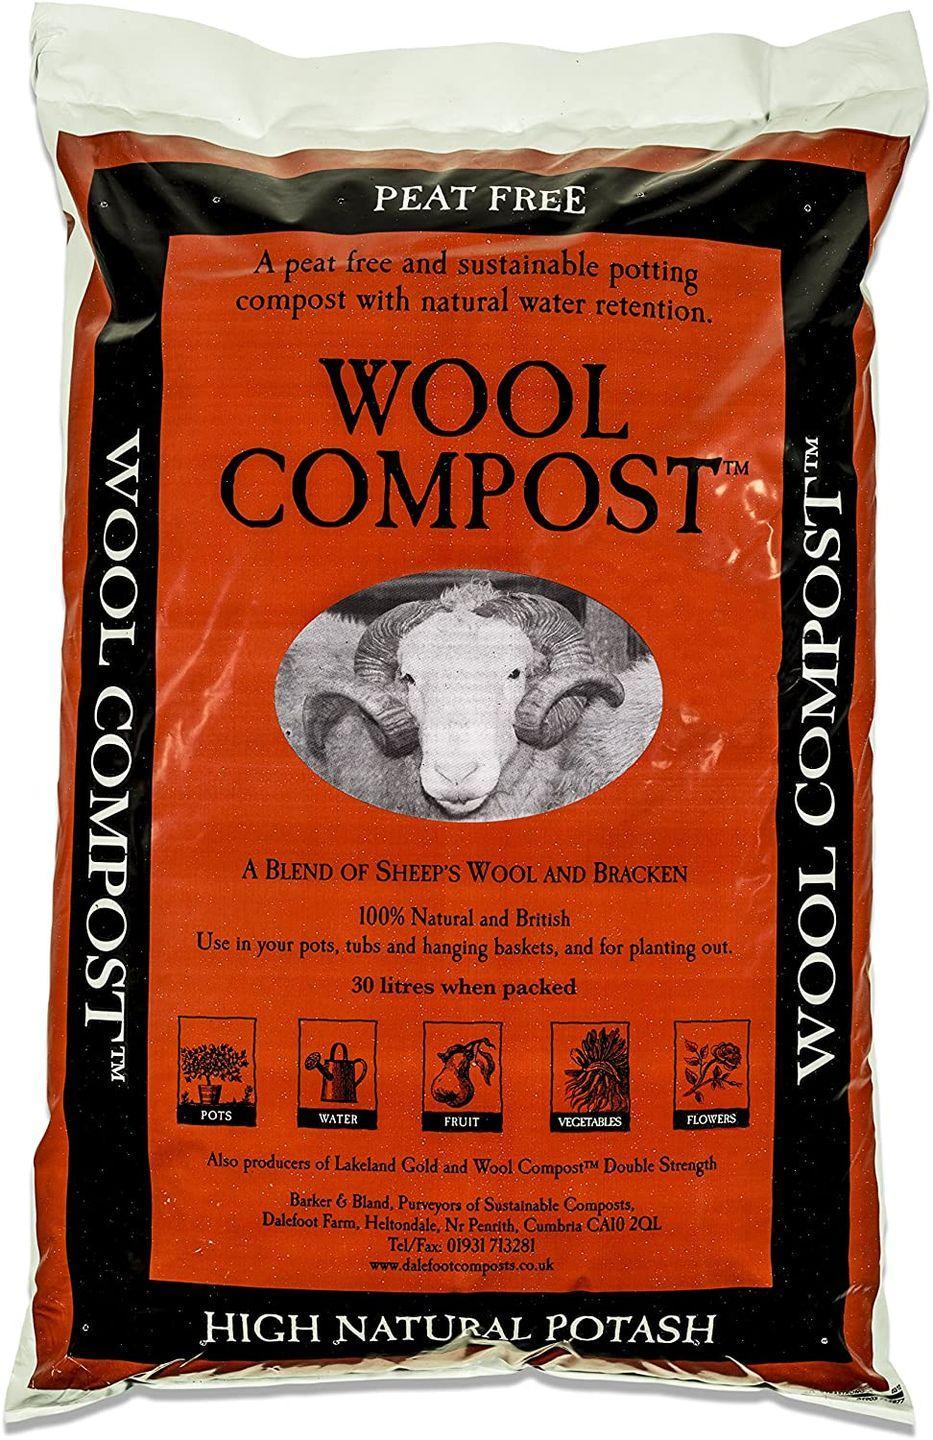 """<p>This compost is a sustainable, peat-free mix made with sheep's wool from the Lake District. This means it is high in nutrients and has great water retention properties. </p><p><strong><a class=""""link rapid-noclick-resp"""" href=""""https://www.amazon.co.uk/Dalefoot-wool-compost-peat-free-sustainable/dp/B012HGYBPO"""" rel=""""nofollow noopener"""" target=""""_blank"""" data-ylk=""""slk:BUY NOW"""">BUY NOW</a> £16.95</strong></p>"""